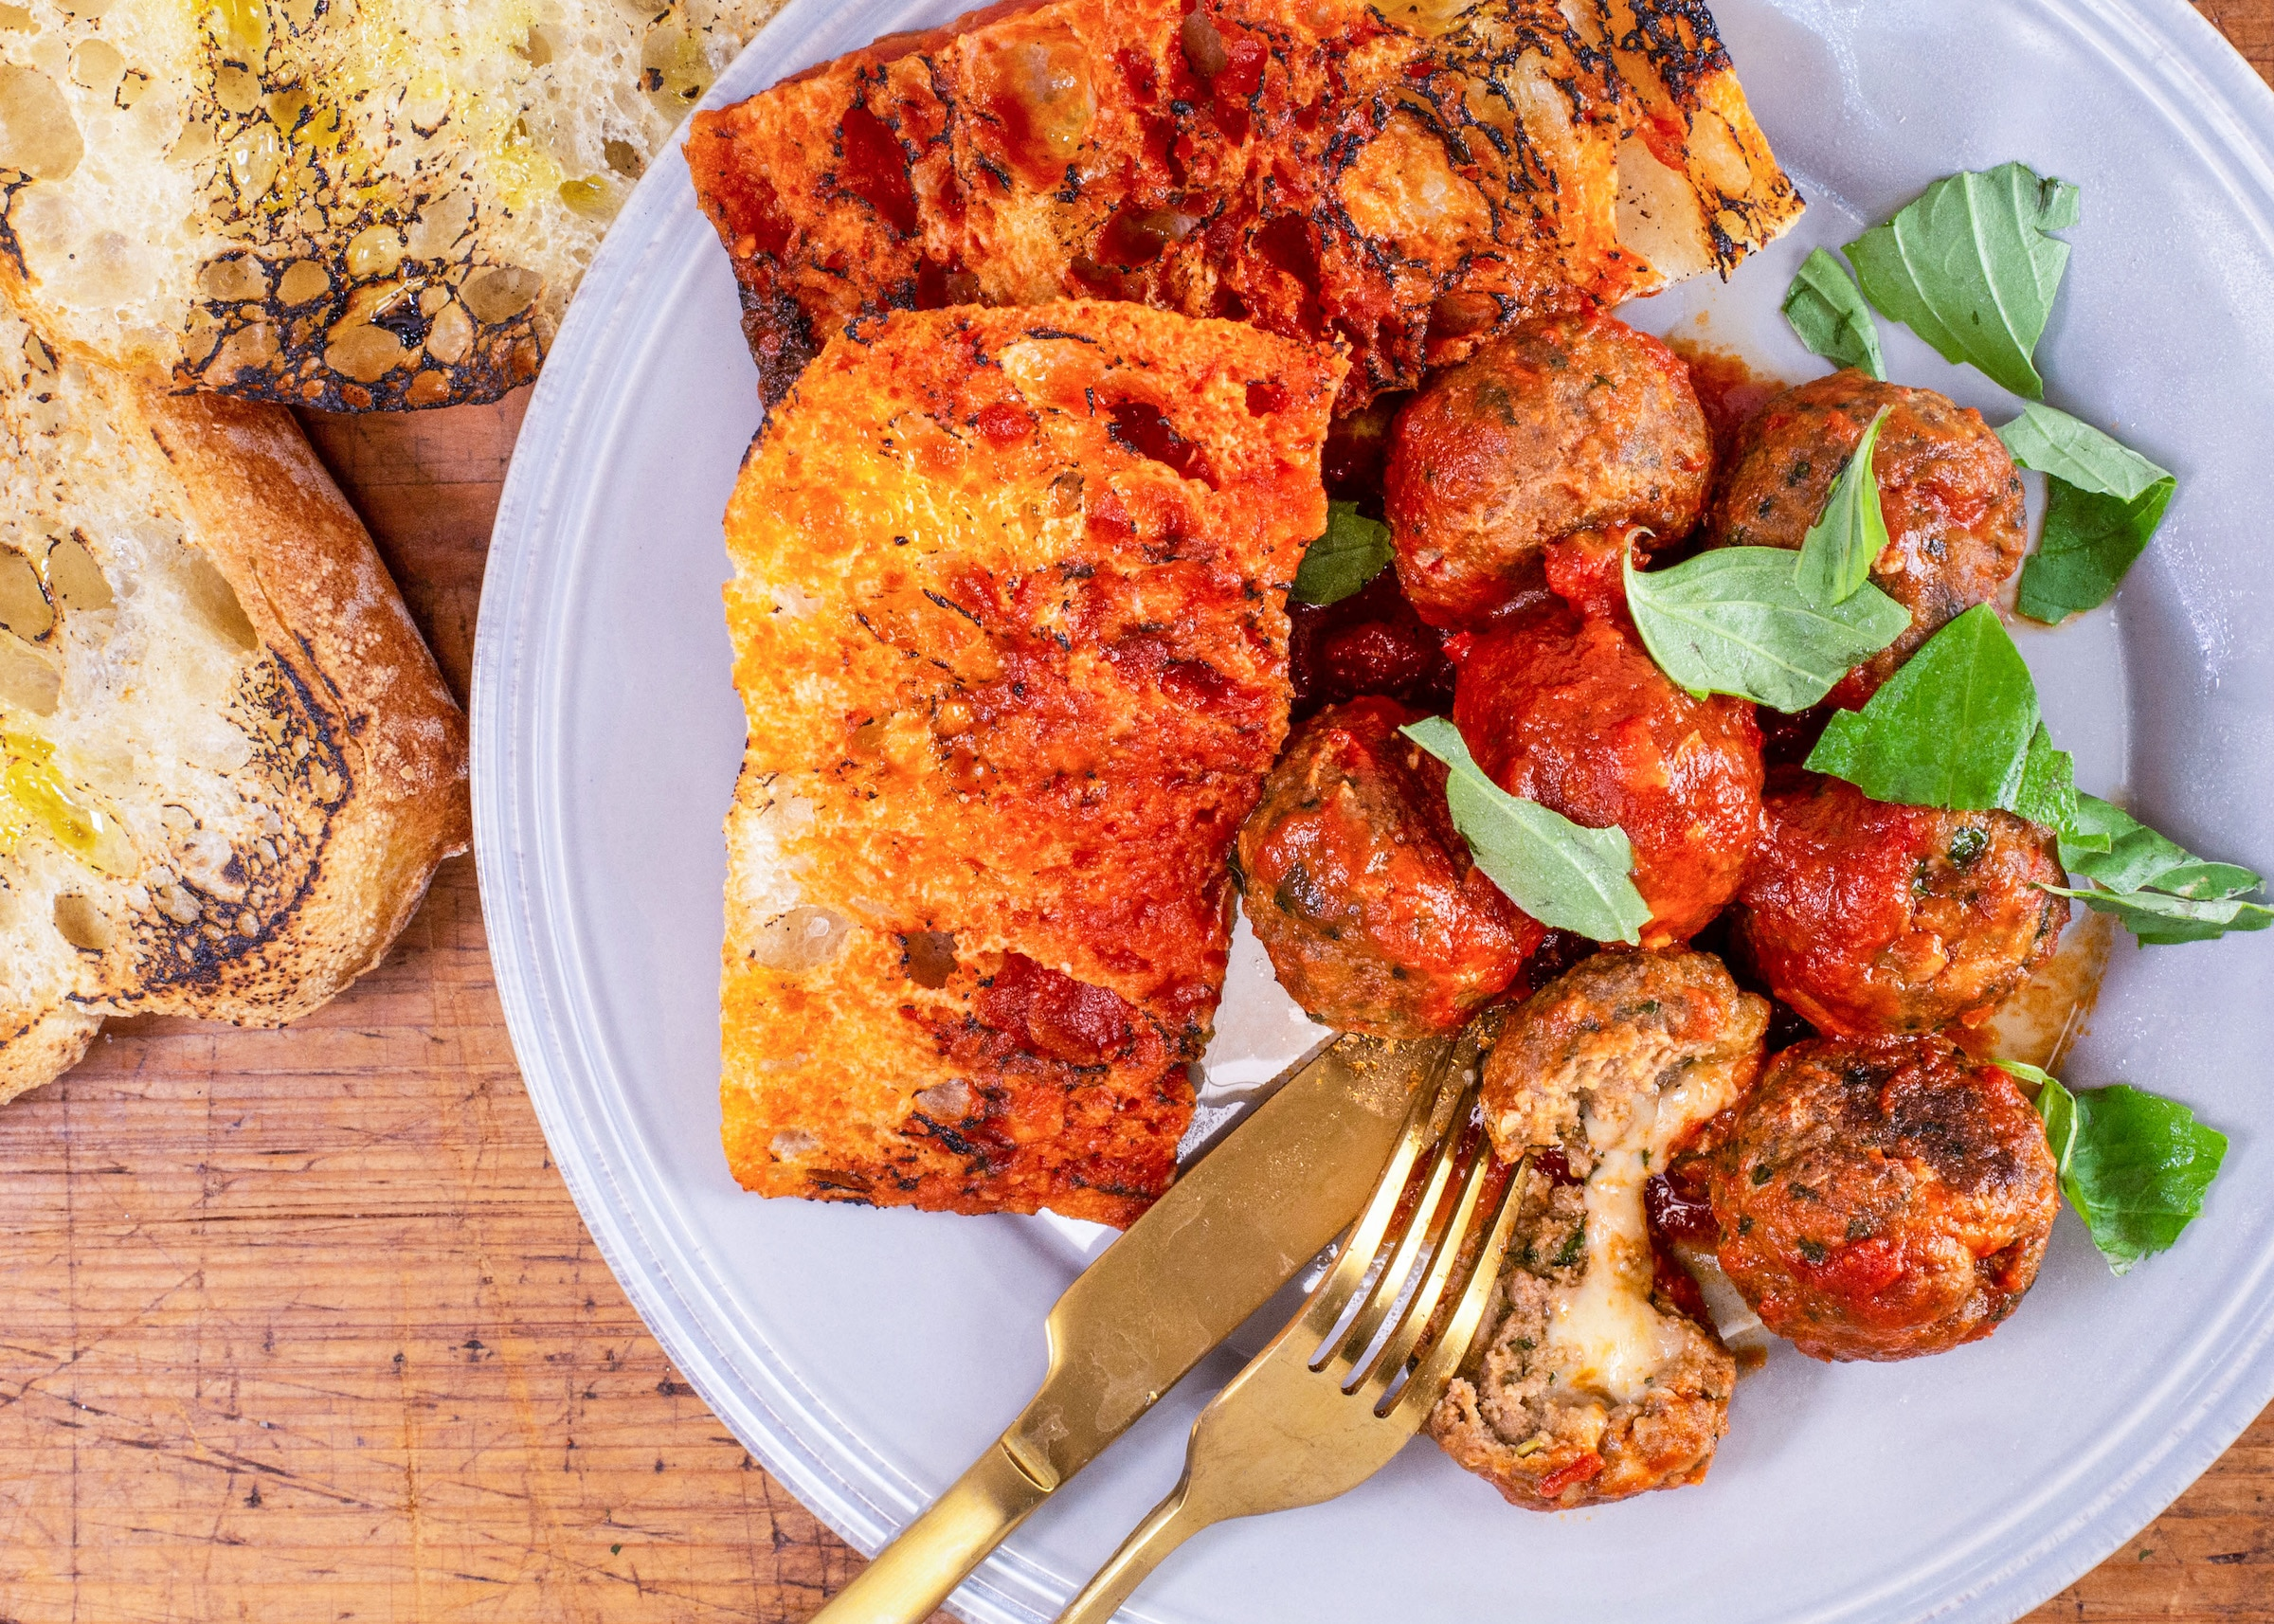 Rachael's Provolone-Stuffed Meatballs With Kale